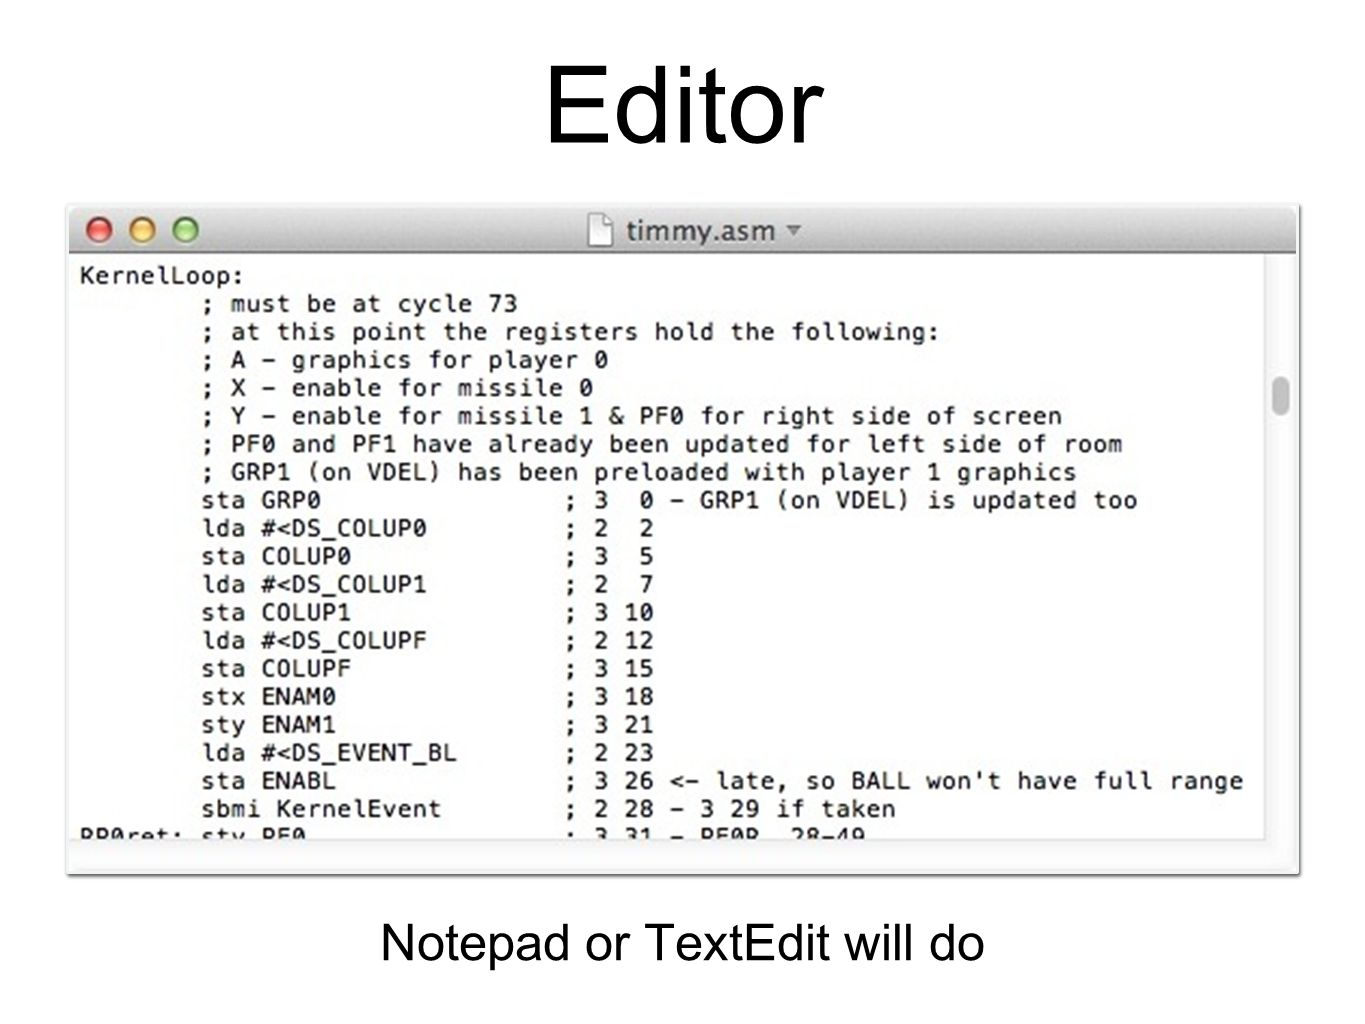 Notepad or TextEdit will do